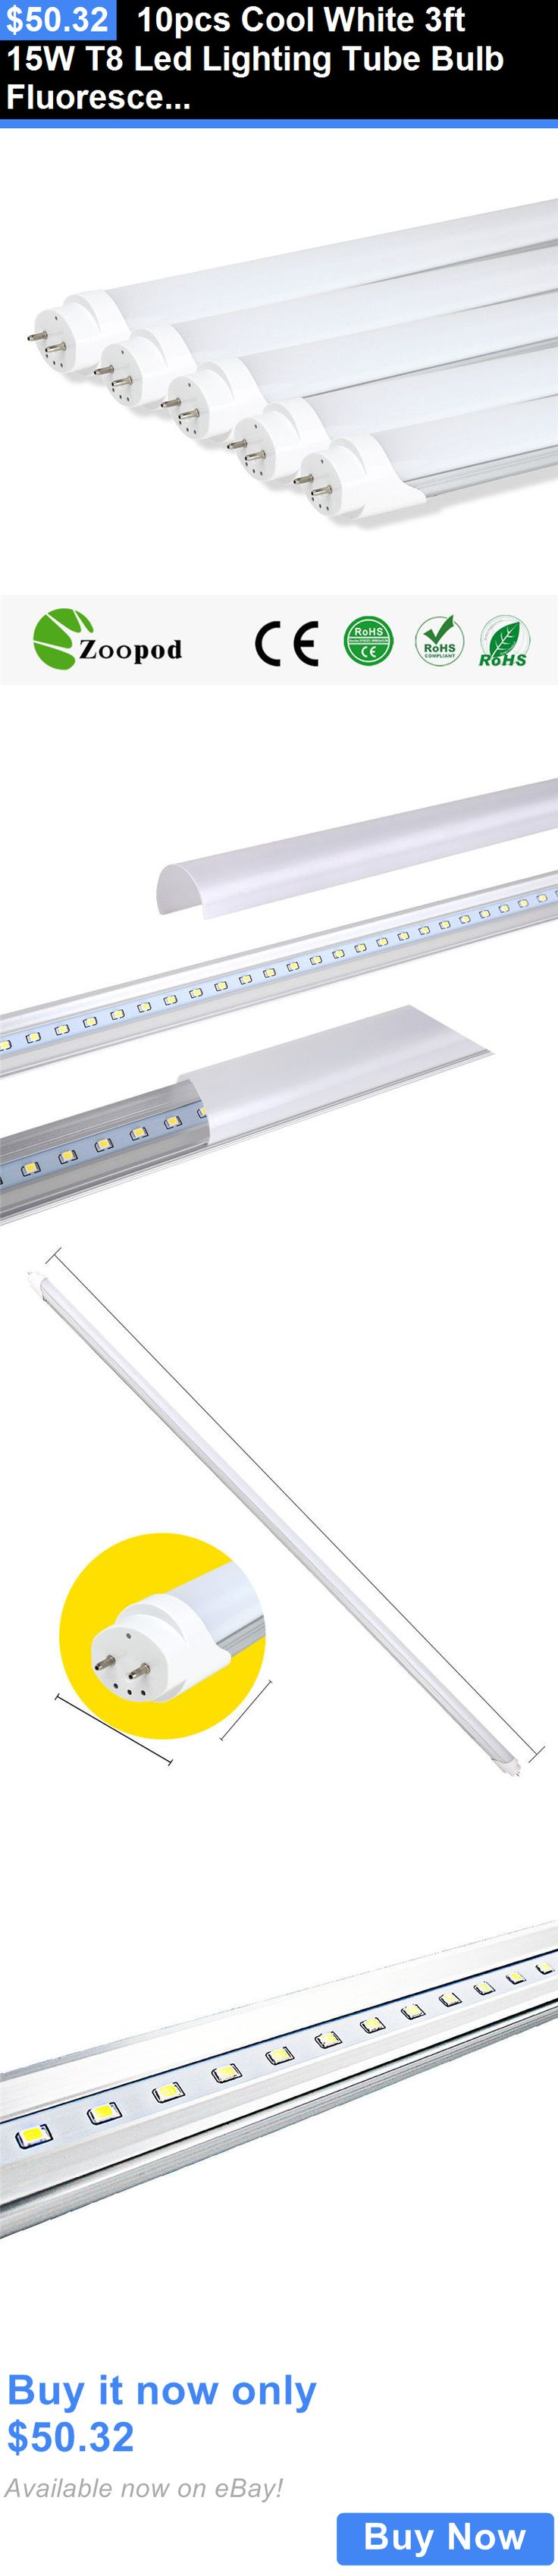 Lamps And Lighting: 10Pcs Cool White 3Ft 15W T8 Led Lighting Tube Bulb Fluorescent Light Replacement BUY IT NOW ONLY: $50.32